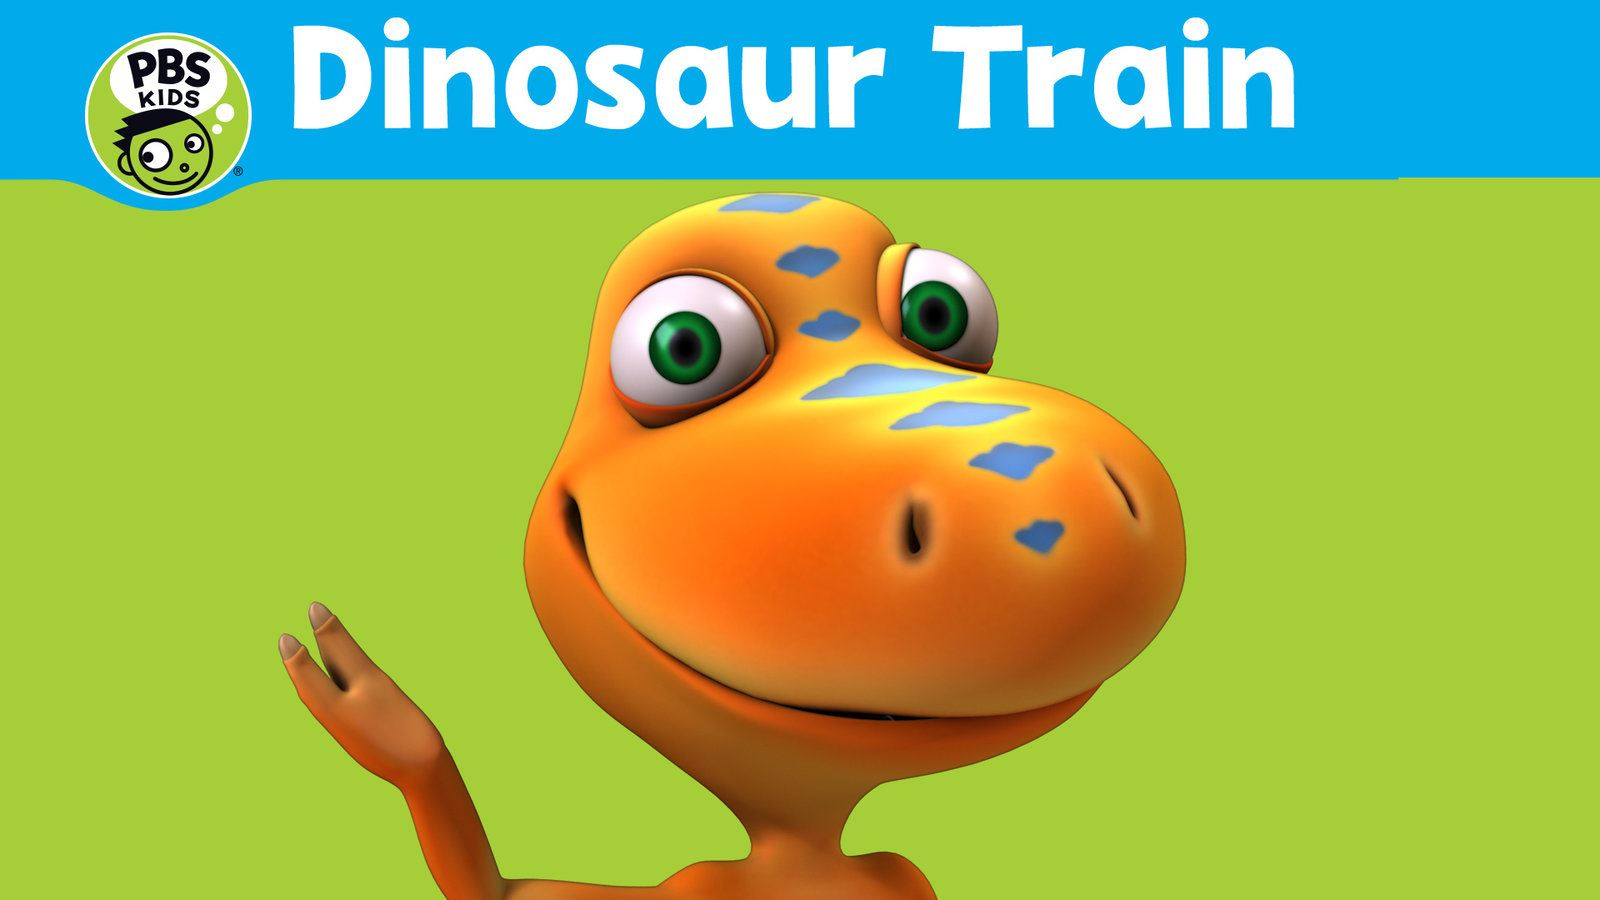 Dinosaur Train Opens in new window